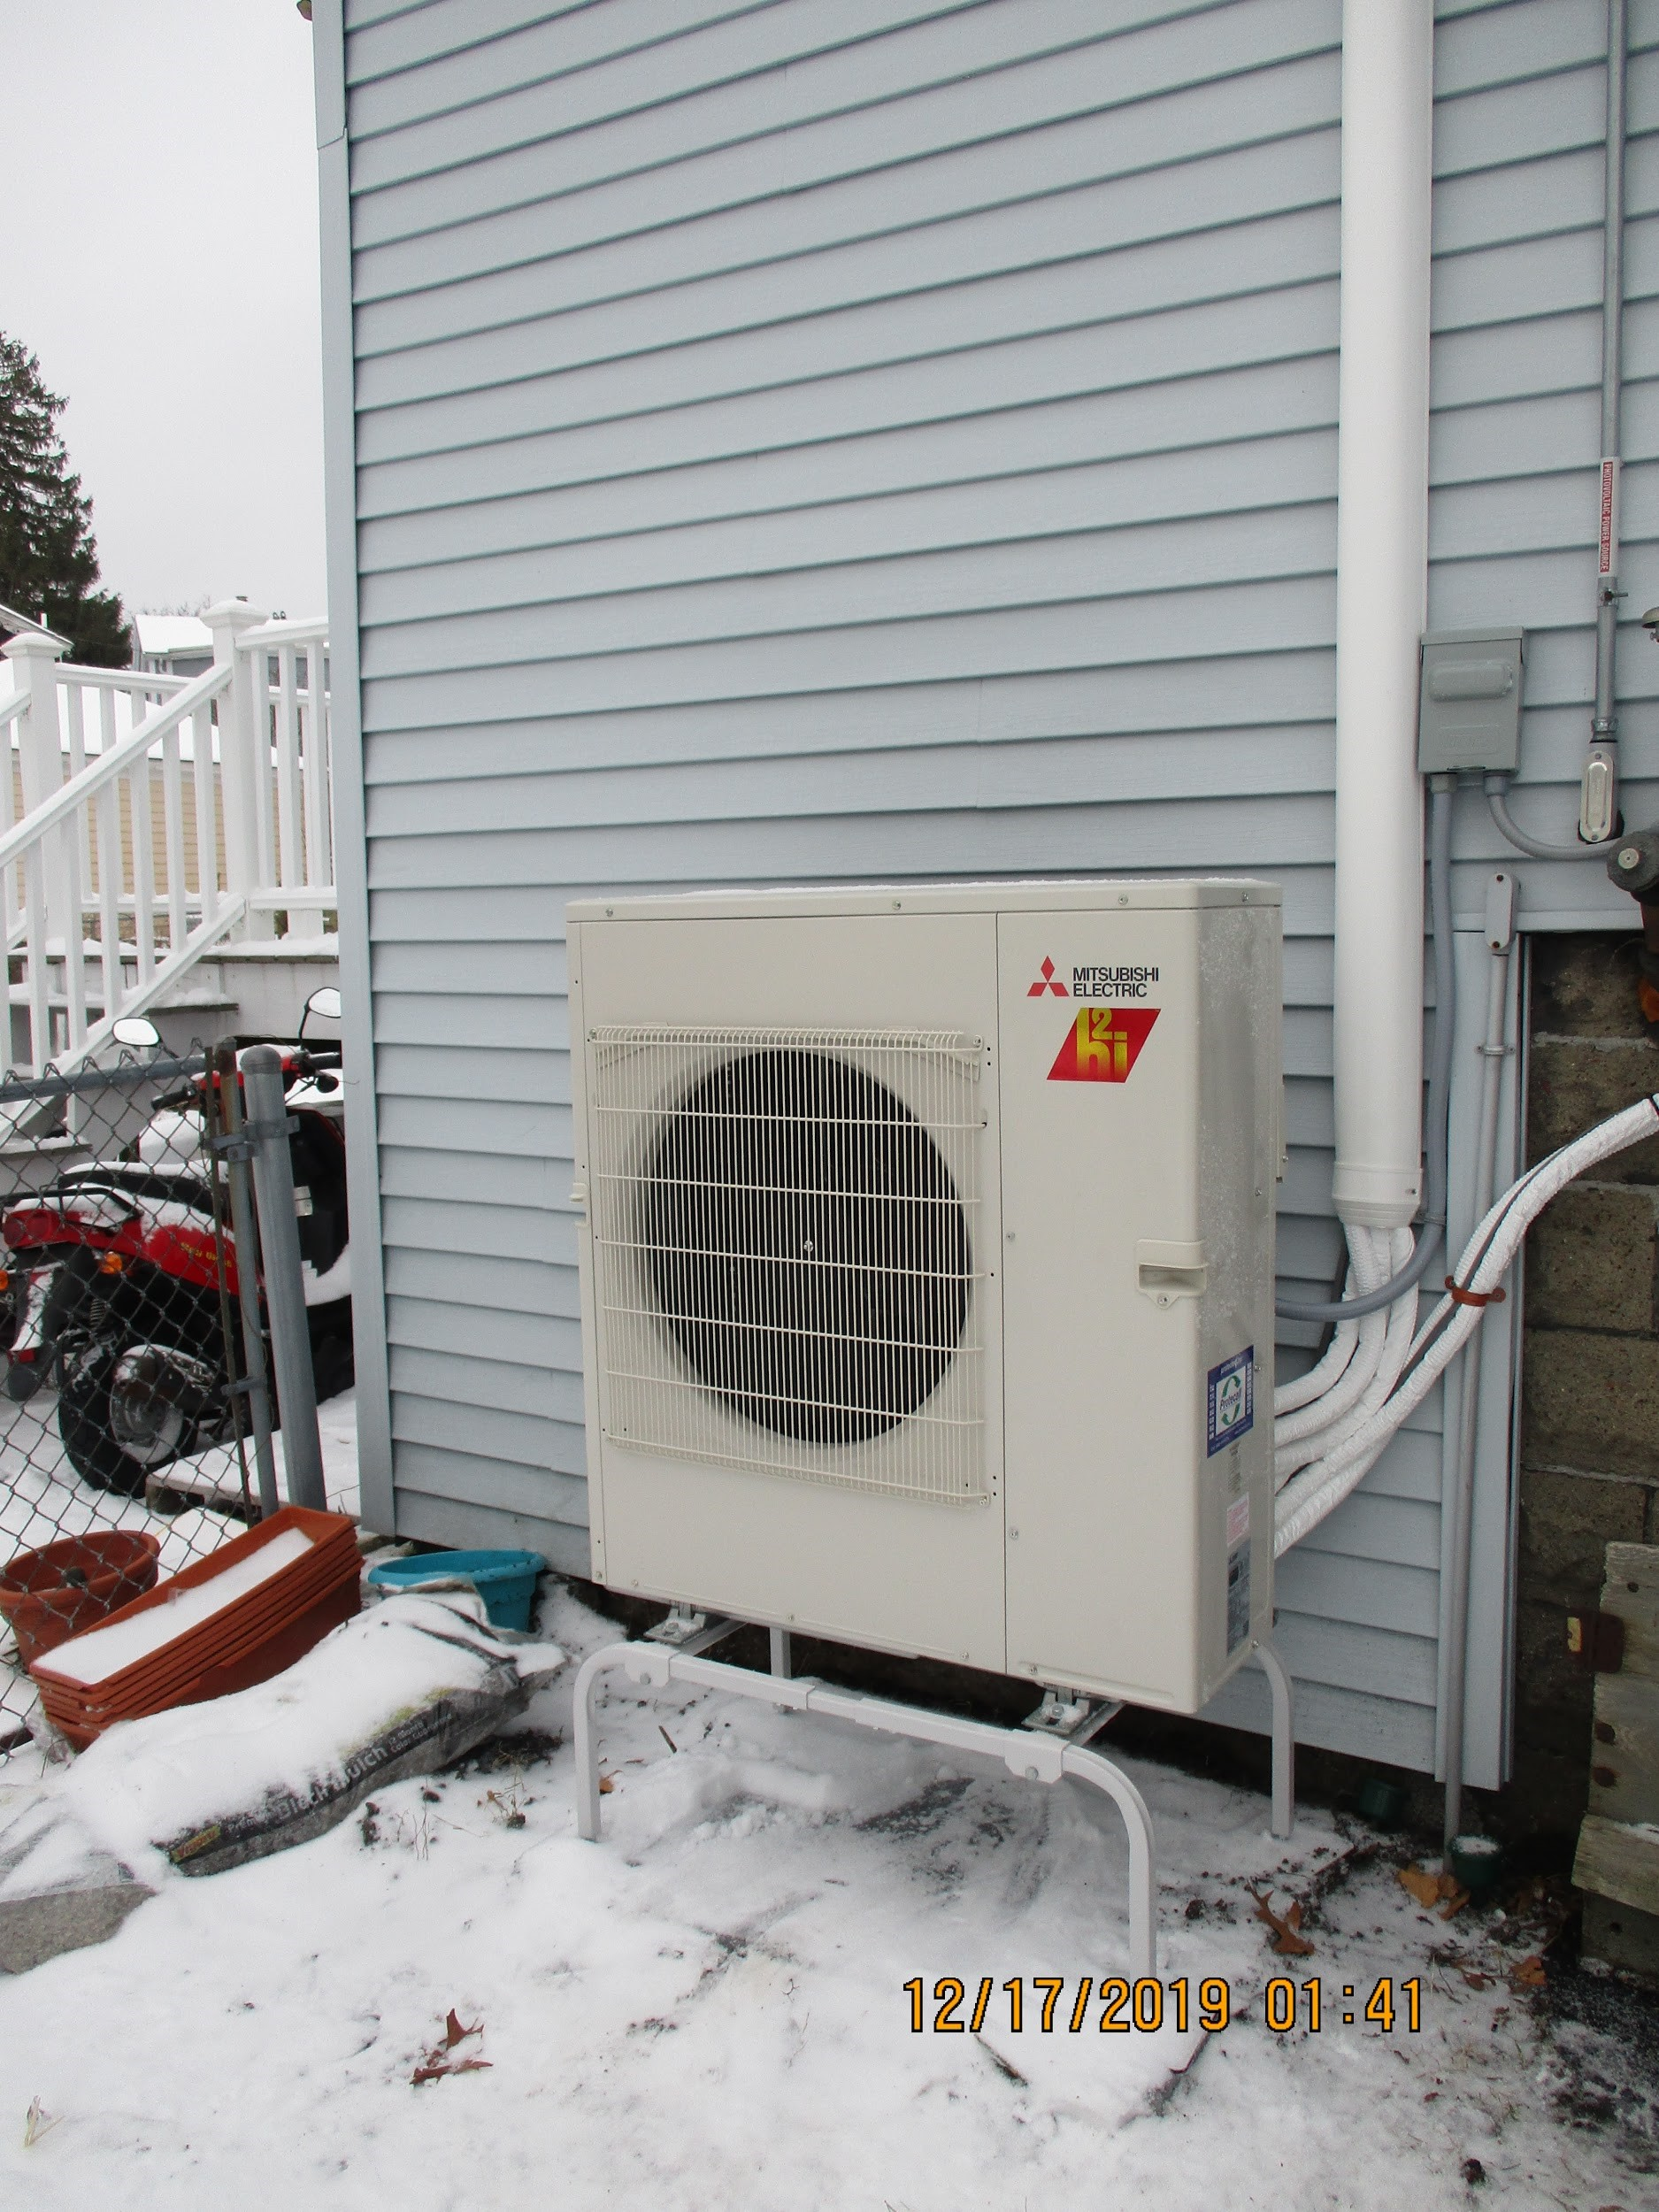 Outdoor condenser installed for Salem home ductless AC system.